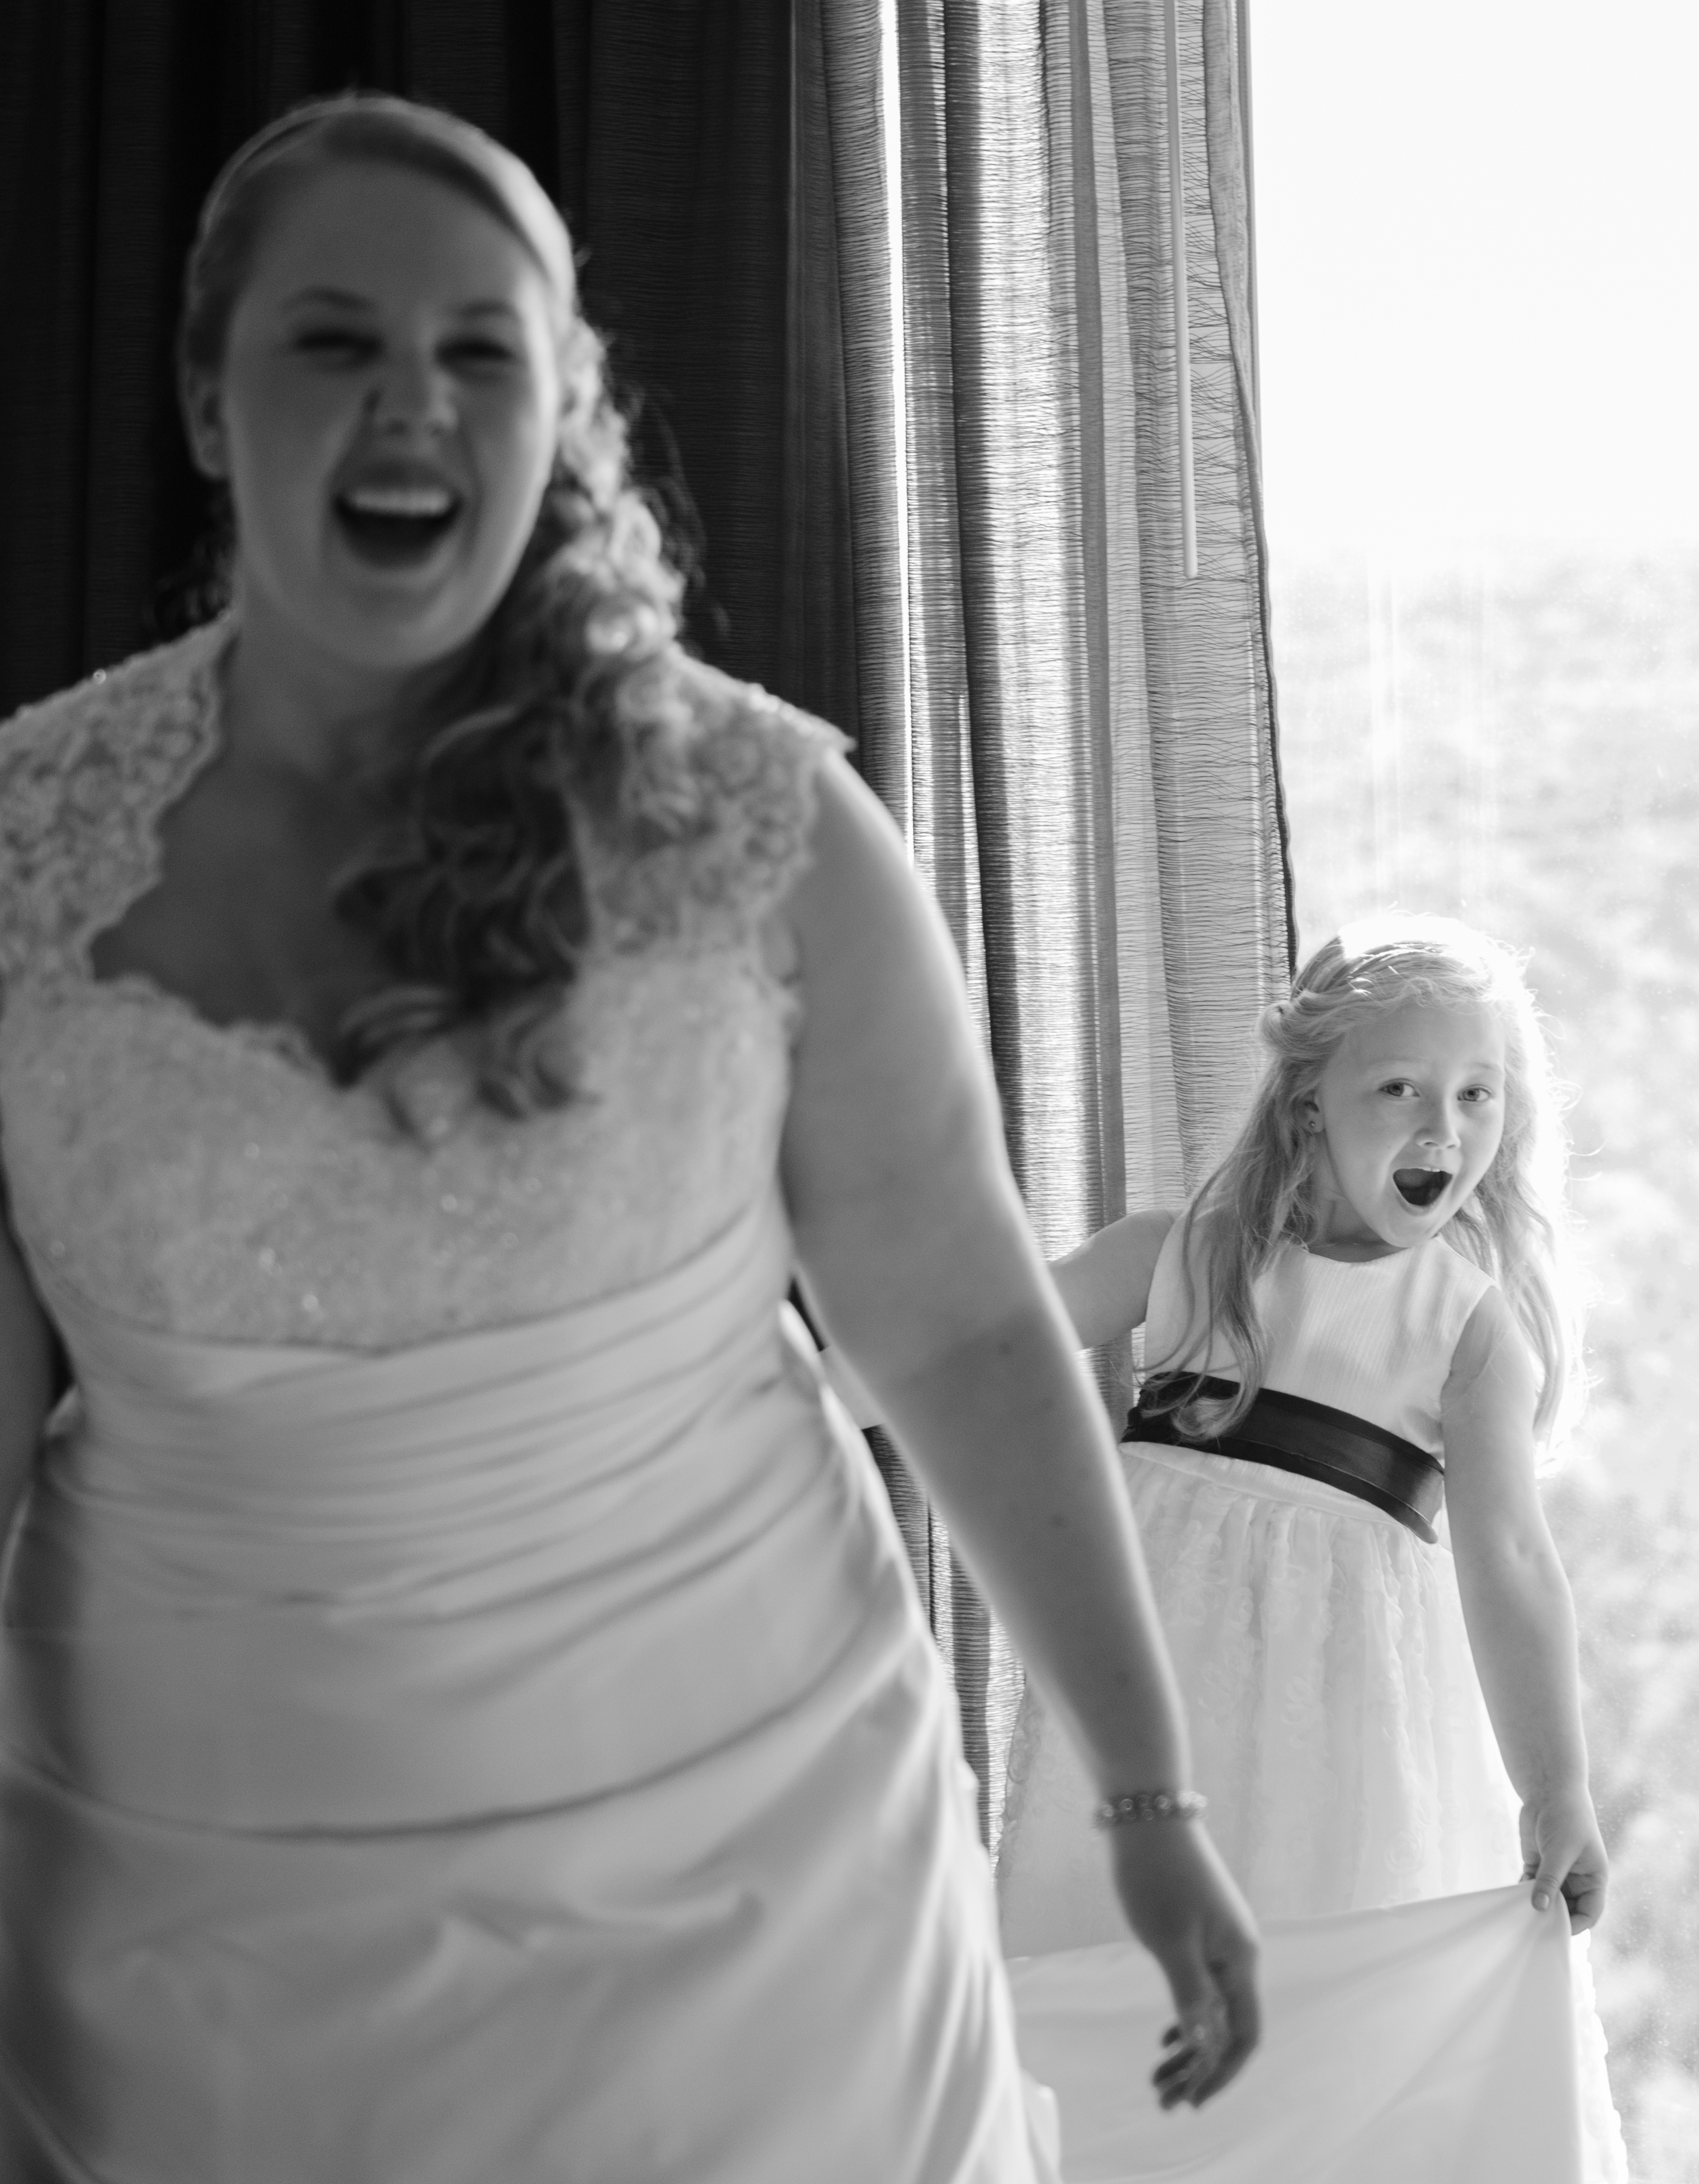 connecticut-candid-wedding-photography-chris-nachtwey-photography.jpg